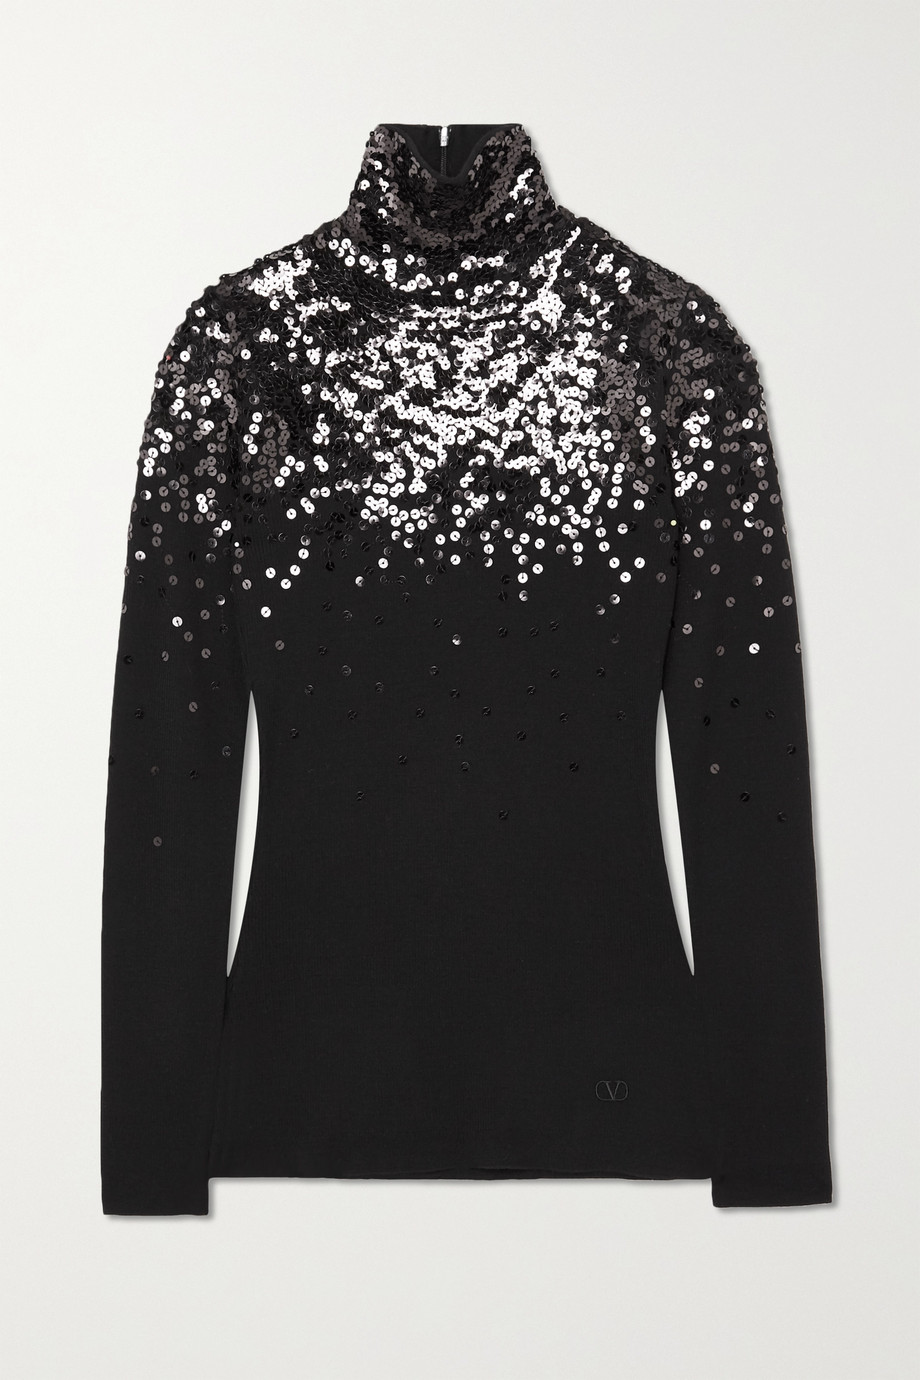 Valentino Sequin-embellished wool turtleneck sweater